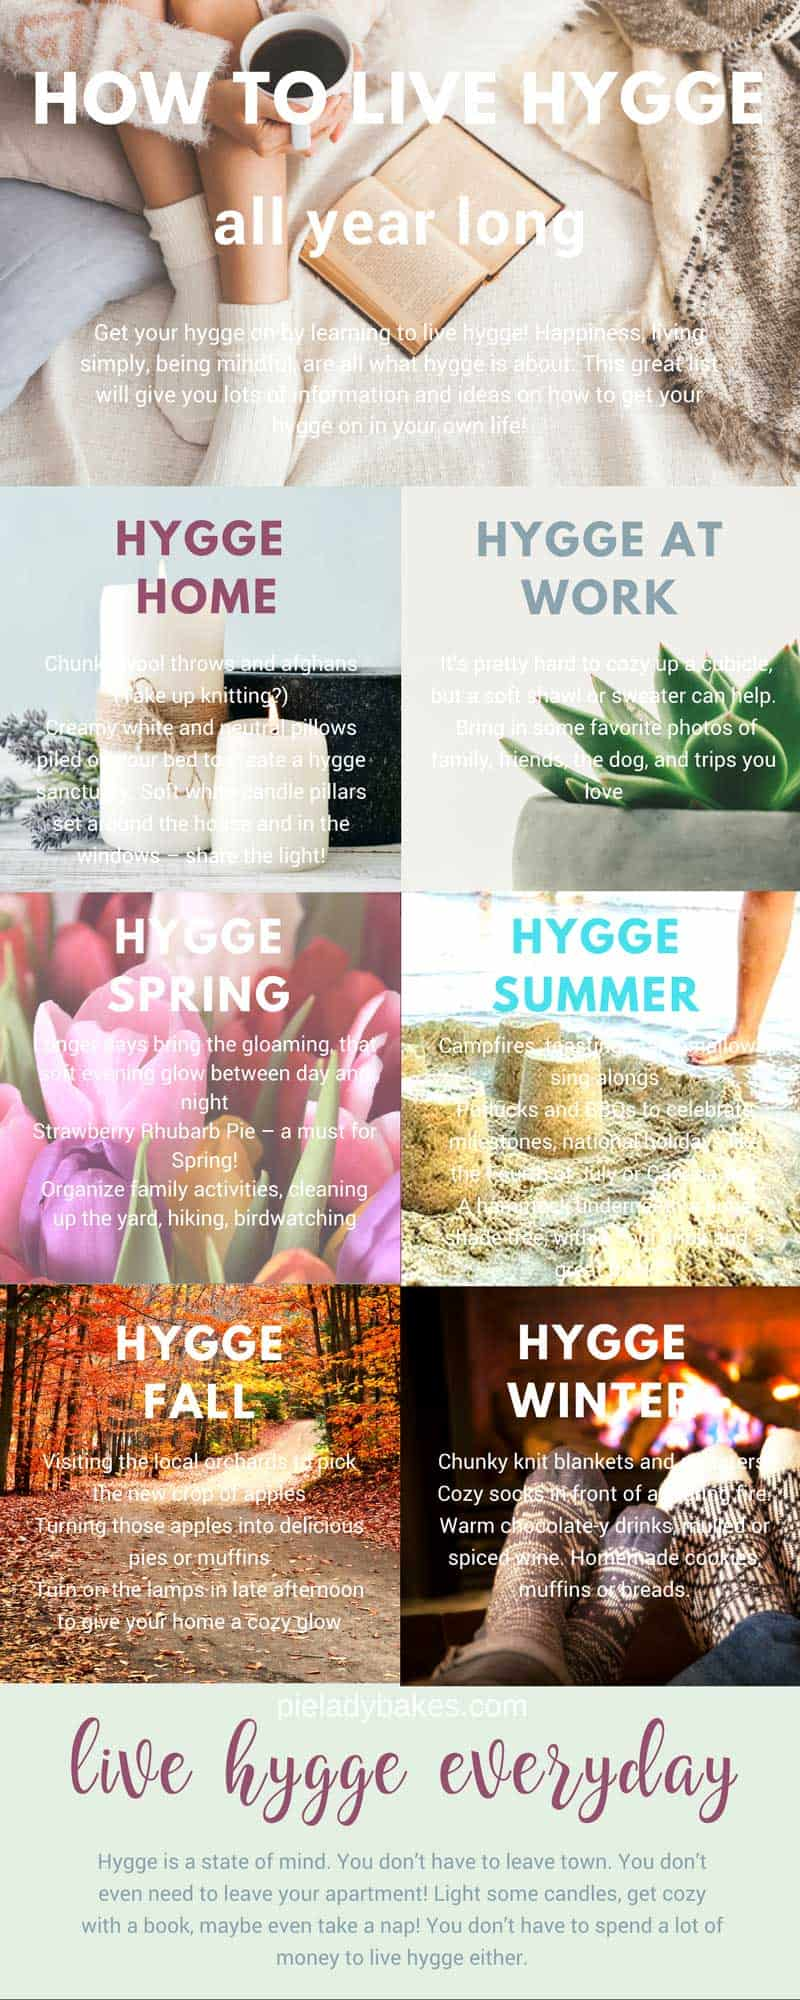 Create a happy home for you and your family with Hygge! Get your hygge on by learning to live hygge! Happiness, living simply, being mindful, are all what hygge is about.  This great list will give you lots of information and ideas on how to get your hygge on in your own life! #hygge #hyggelifestyle #youcanliverichonless.com #happiness #denmark #danishmeaning #hyggelit #hyggehome #hyggespring #hyggesummer #hyggefall #hyggewinter #hyggehomedecor